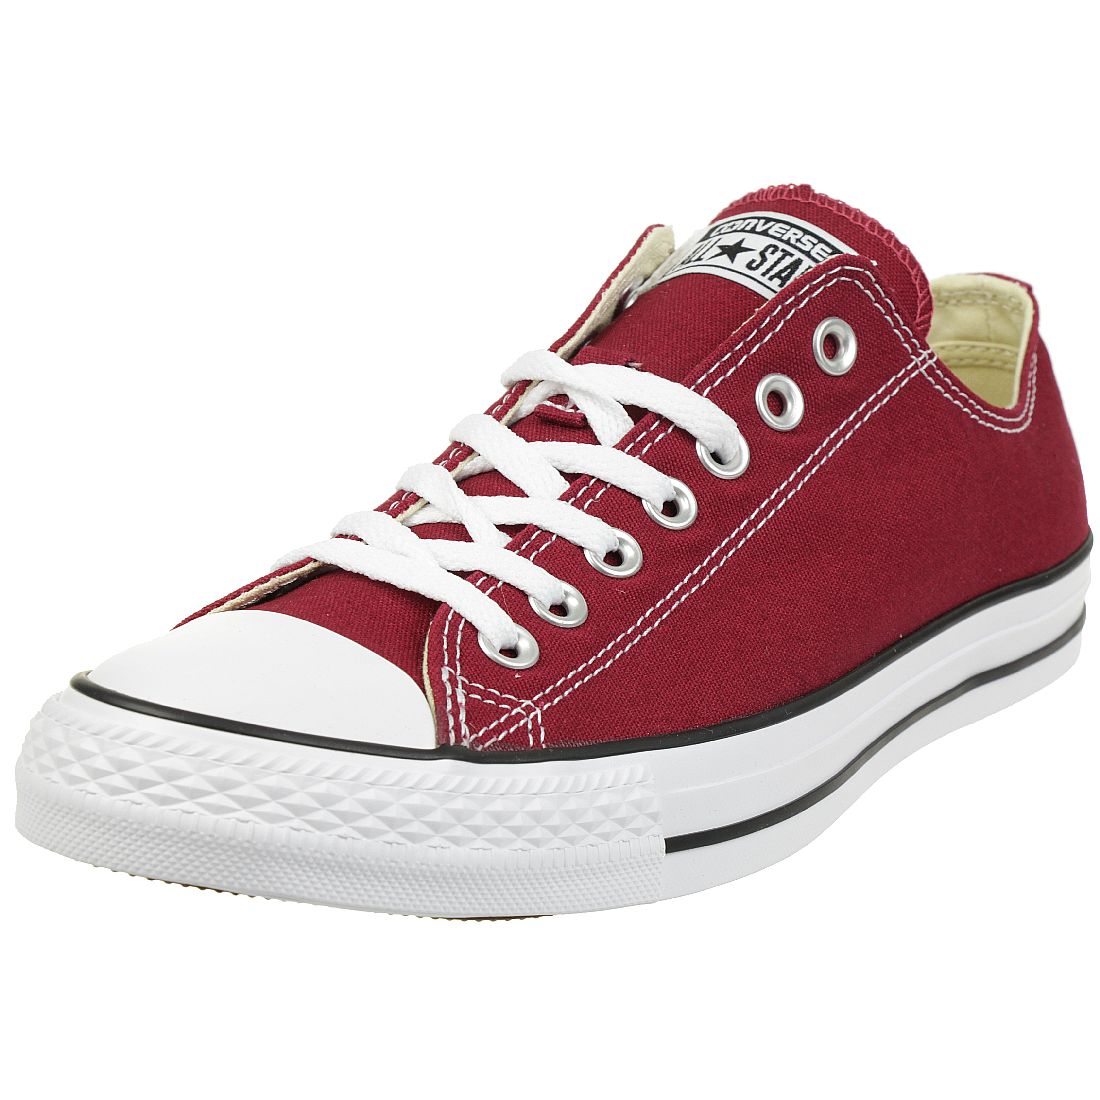 b809b547dde10 Converse All Star OX Dark Maroon Chucks Chuck All Star Sneaker M9691C canvas